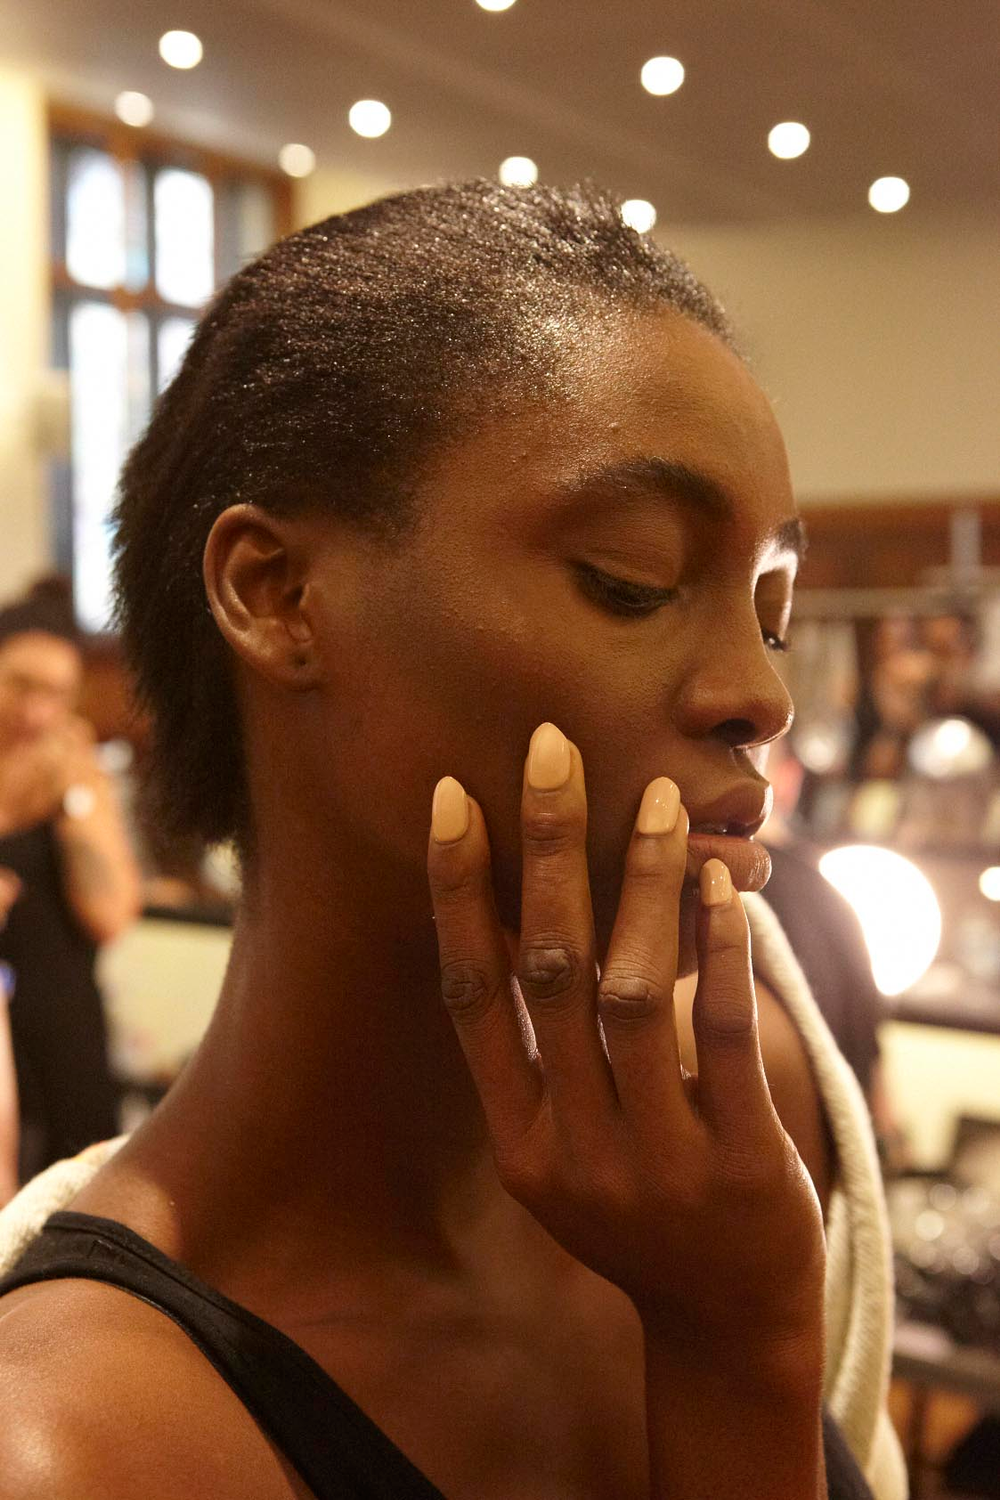 <p>Edwards created a toned down nail using a custom blend of opaque nude polish painted over imPRESS Press-ON Manicure by Broadway Nails. Photo courtesy of imPRESSmanicure.&nbsp;</p>